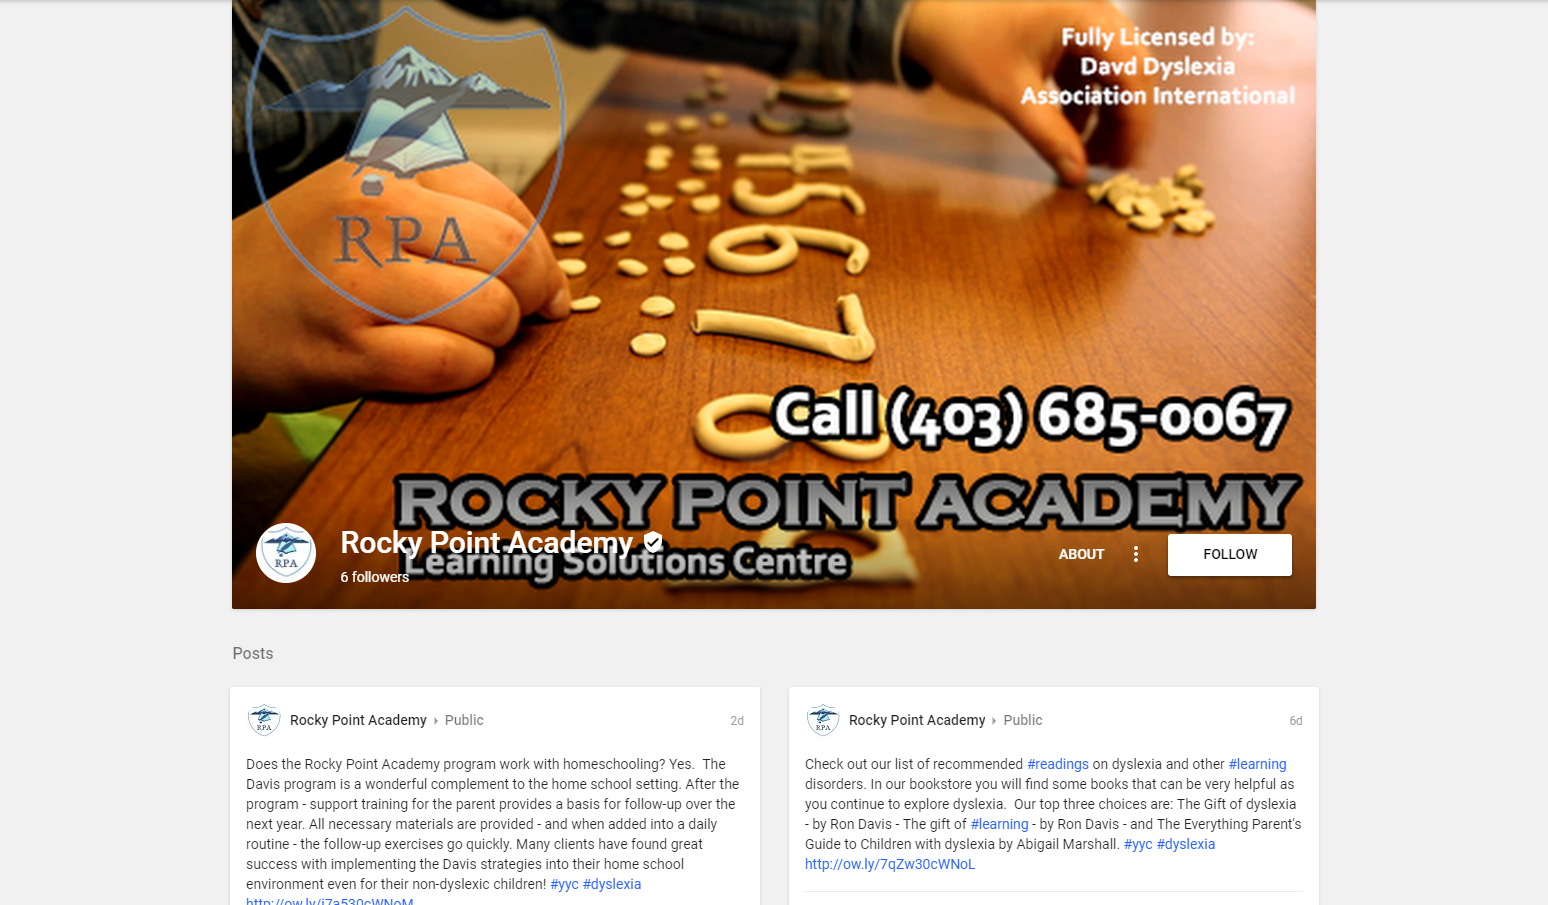 calgary social media services google plus rocky point academy